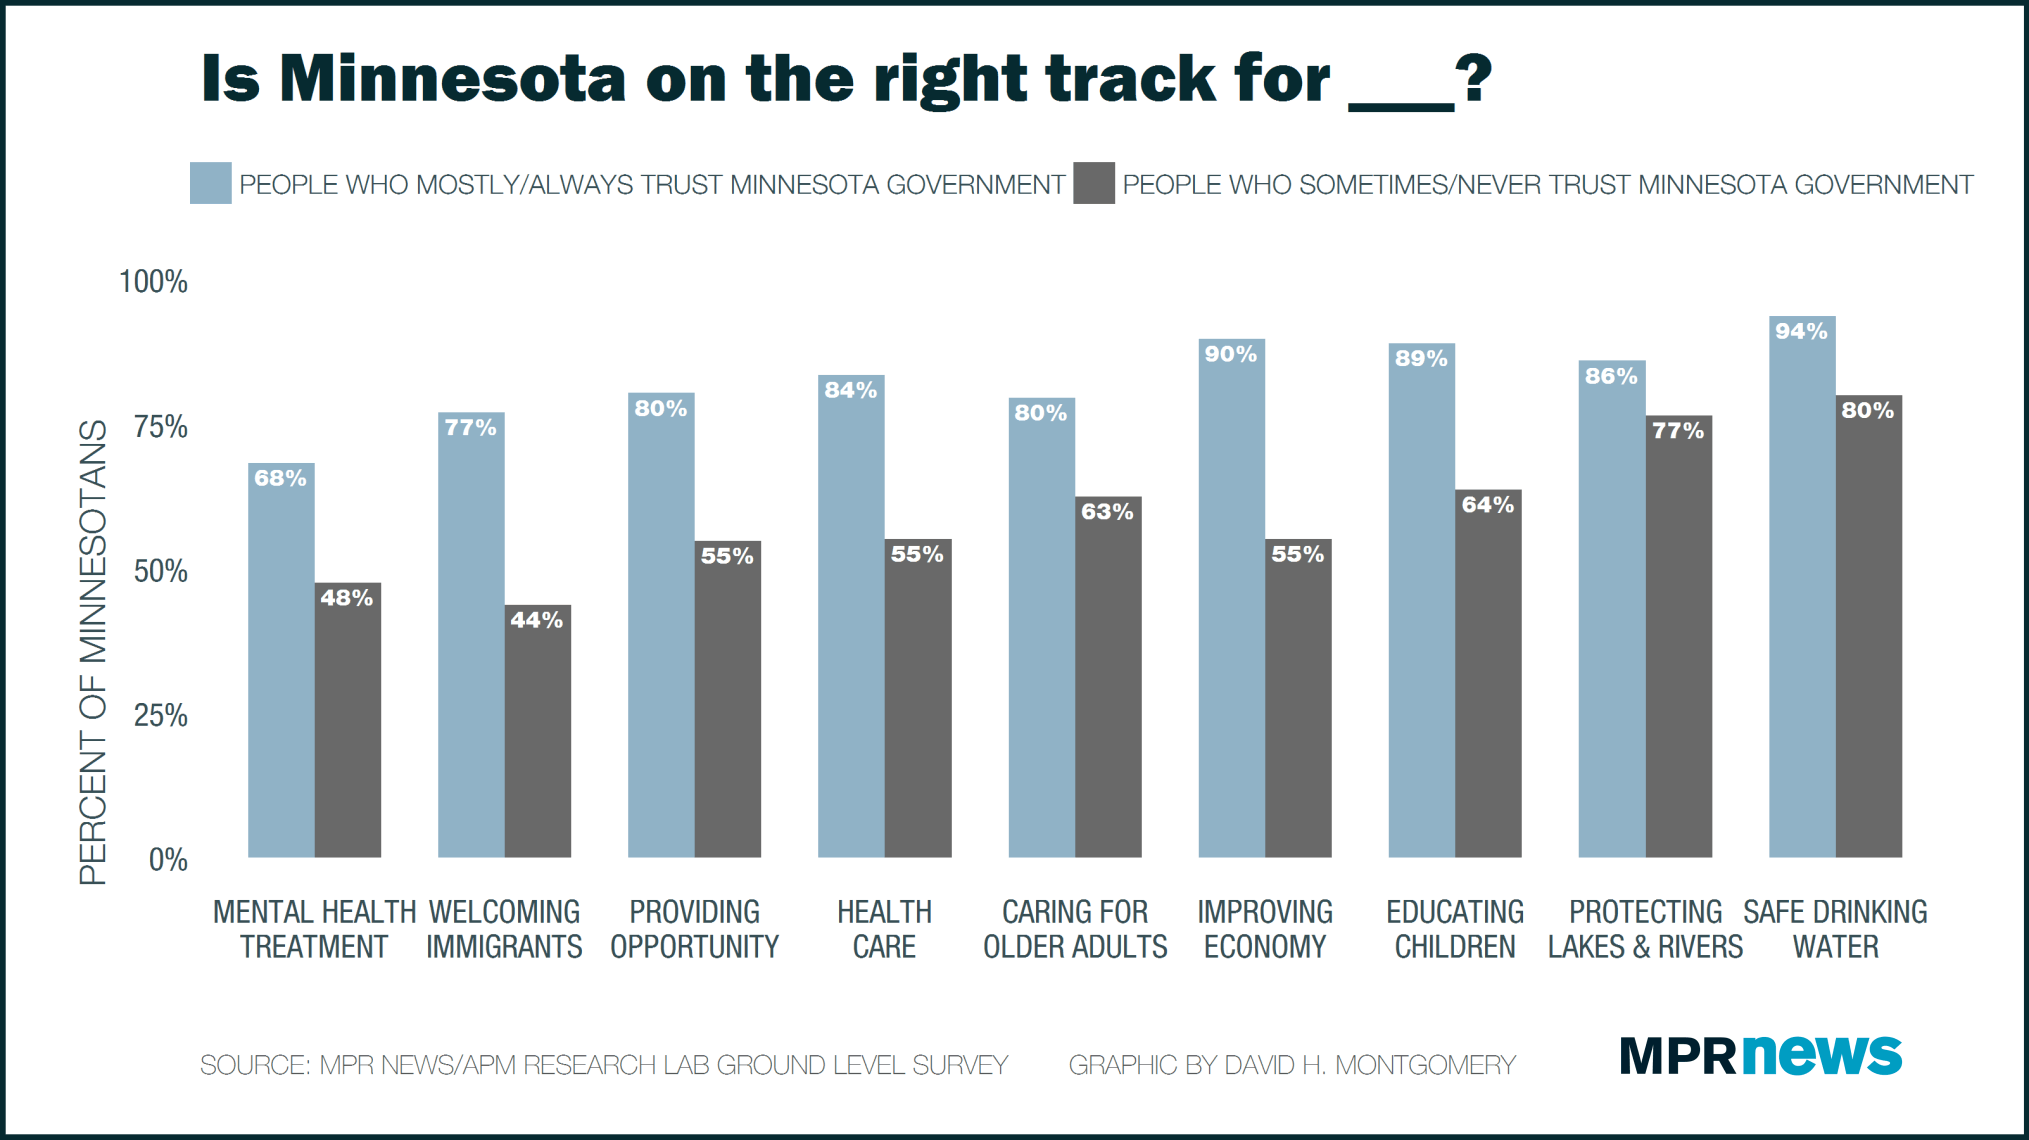 The less trust, the less Minnesotans think we are on the right track.